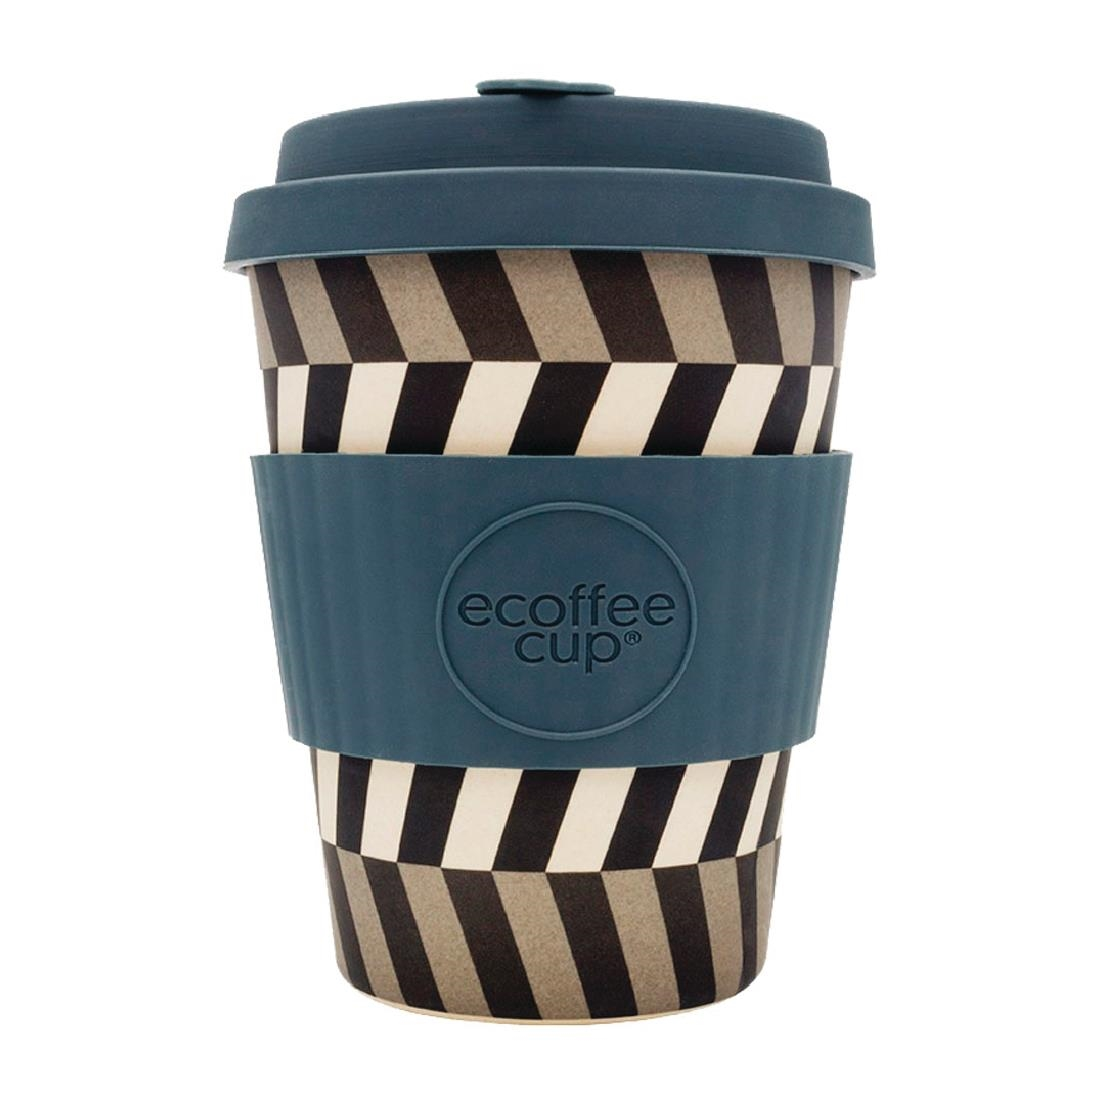 Image of Ecoffee Cup Bamboo Reusable Coffee Cup Look Into My Eyes 12oz